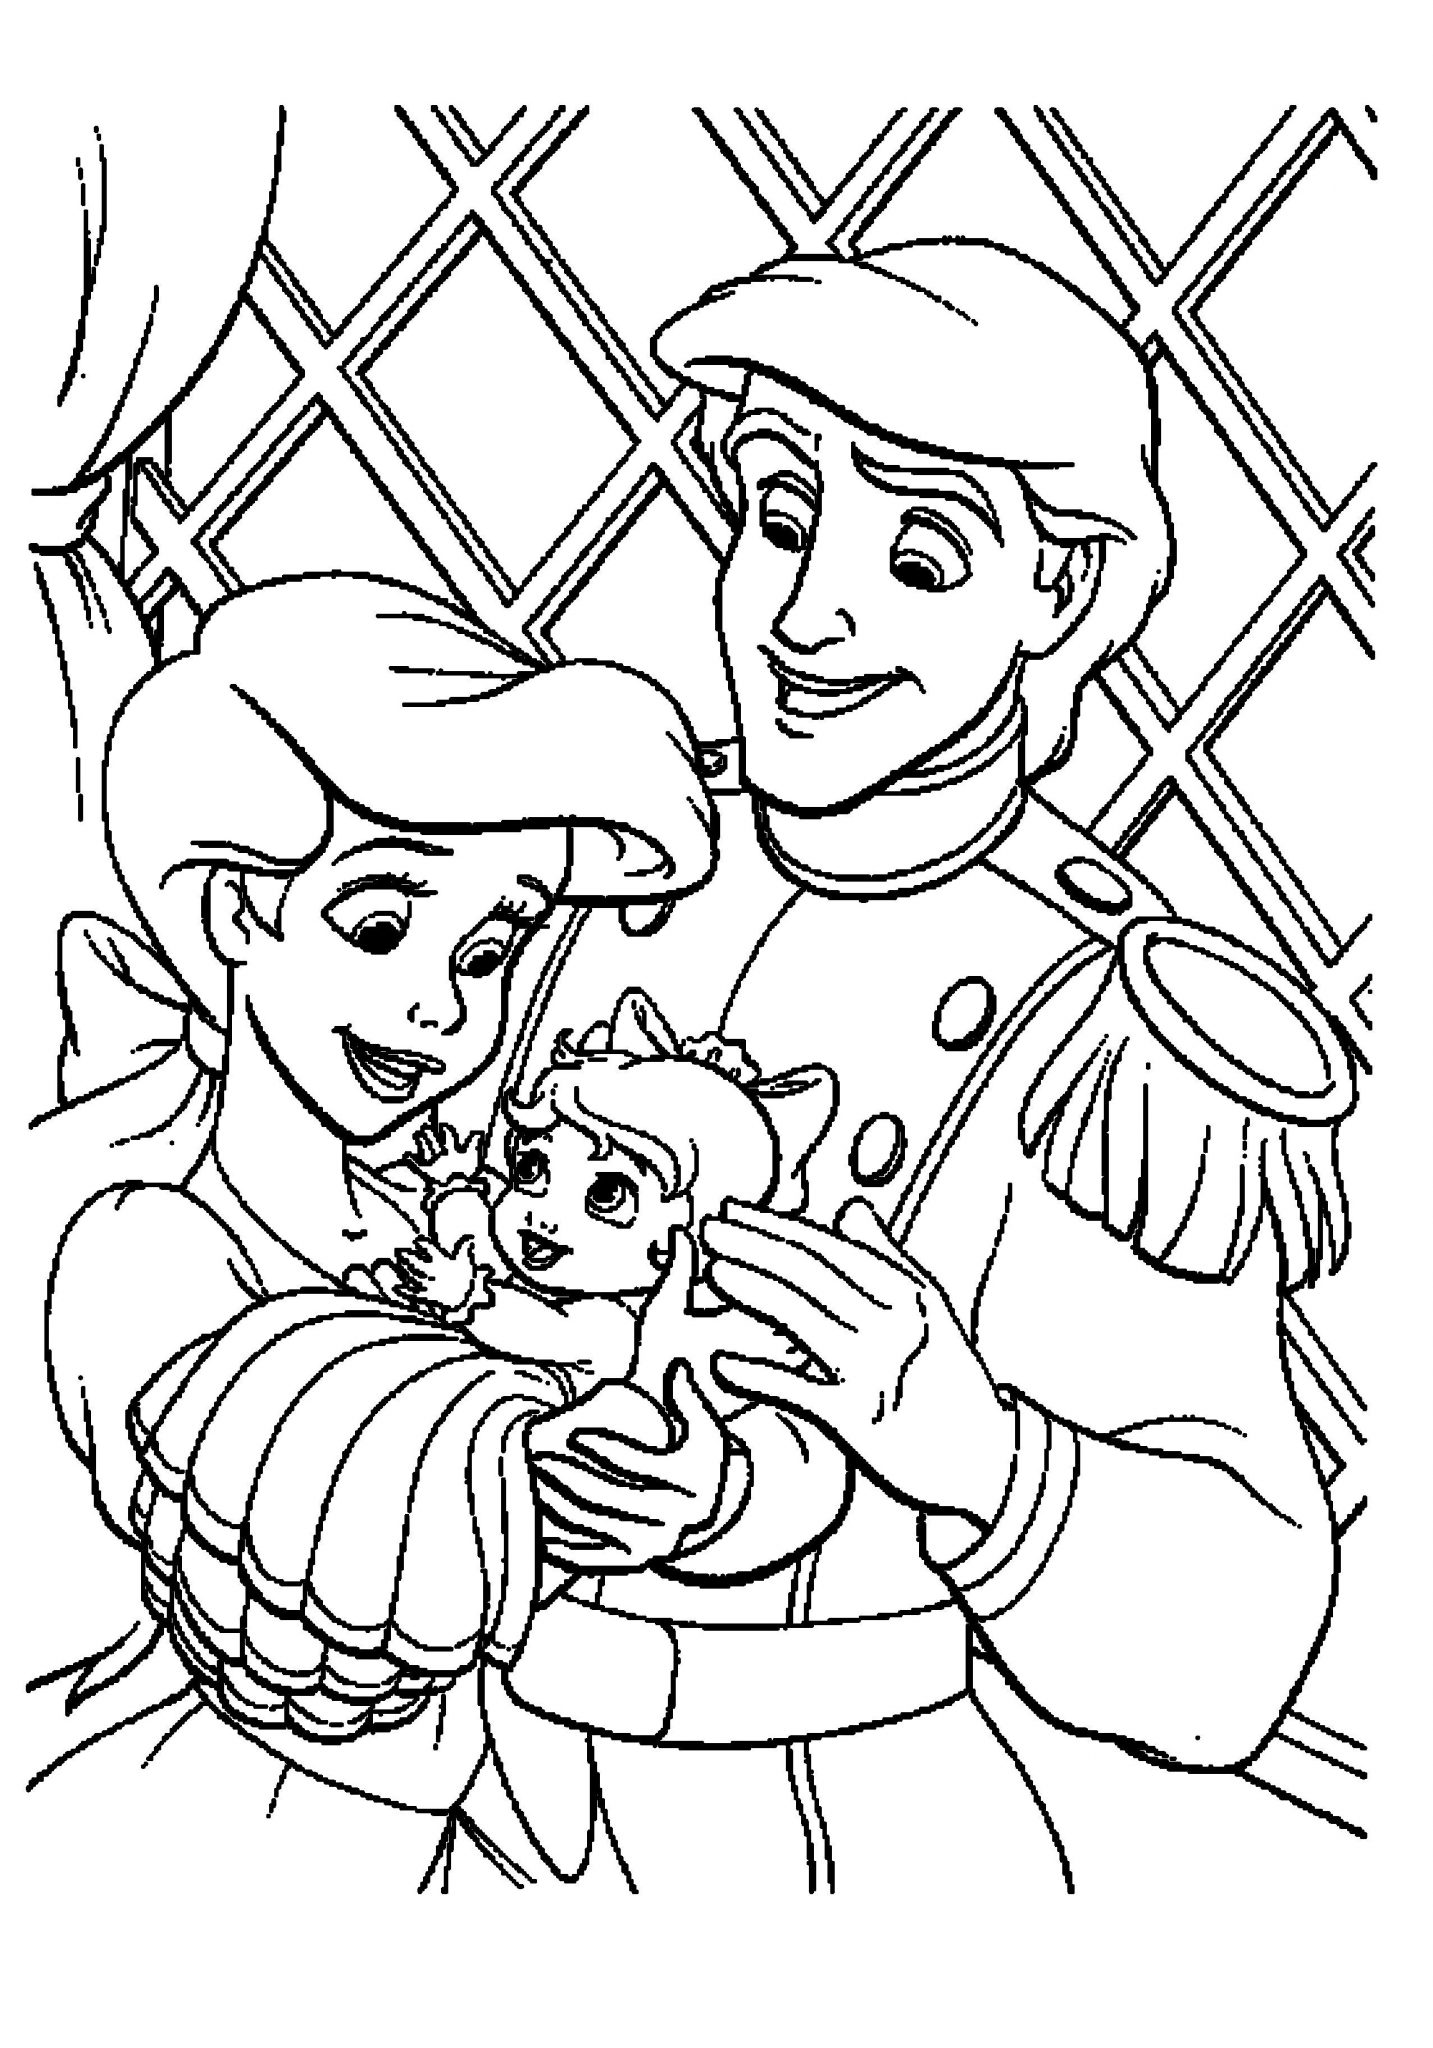 the little mermaid coloring pages print download find the suitable little mermaid coloring pages mermaid the little